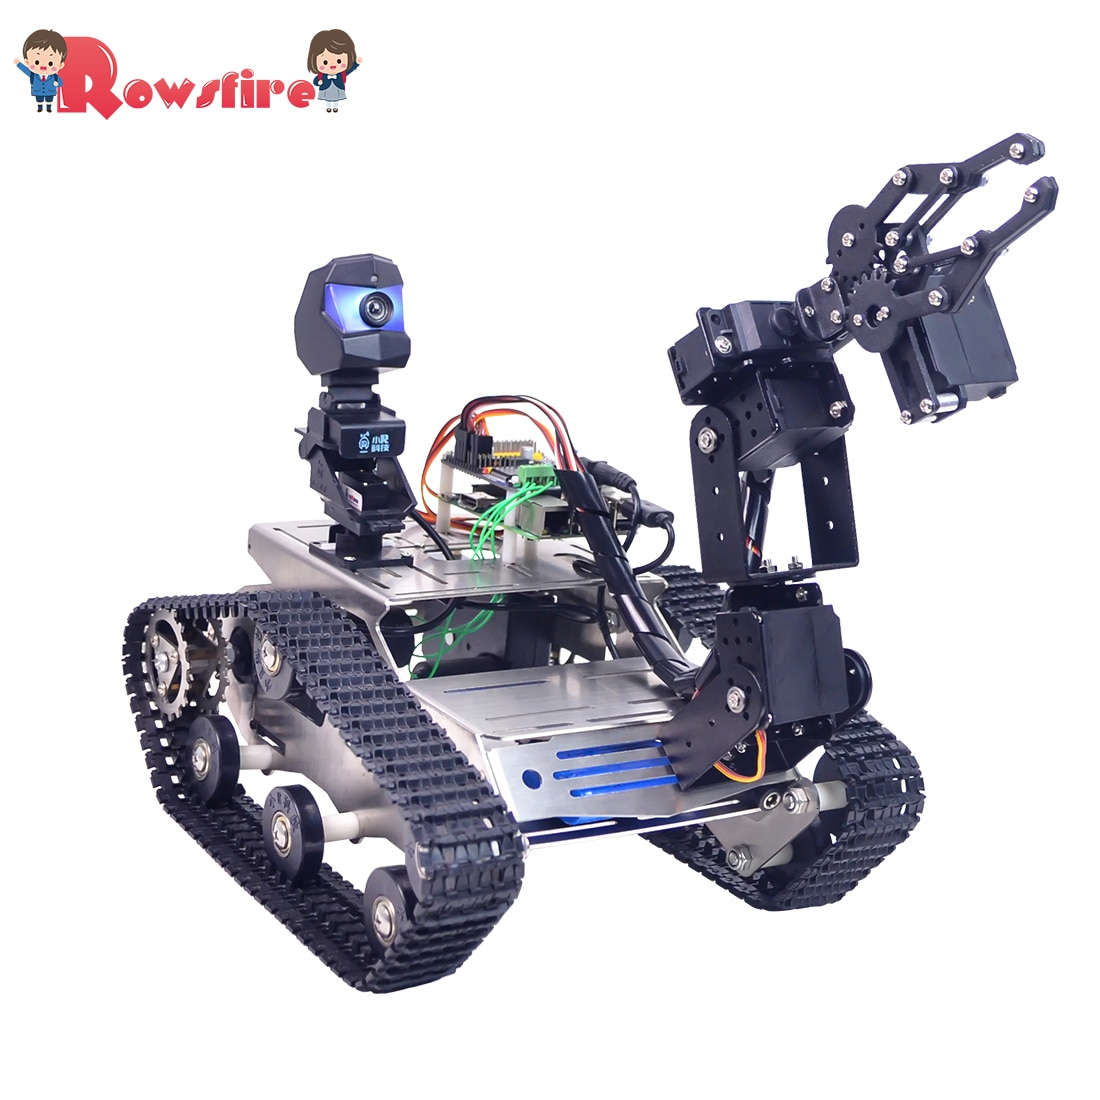 Programmable TH WiFi FPV Tank Robot Car Kit with Arm for Arduino MEGA - Standard Version/Avoidance V